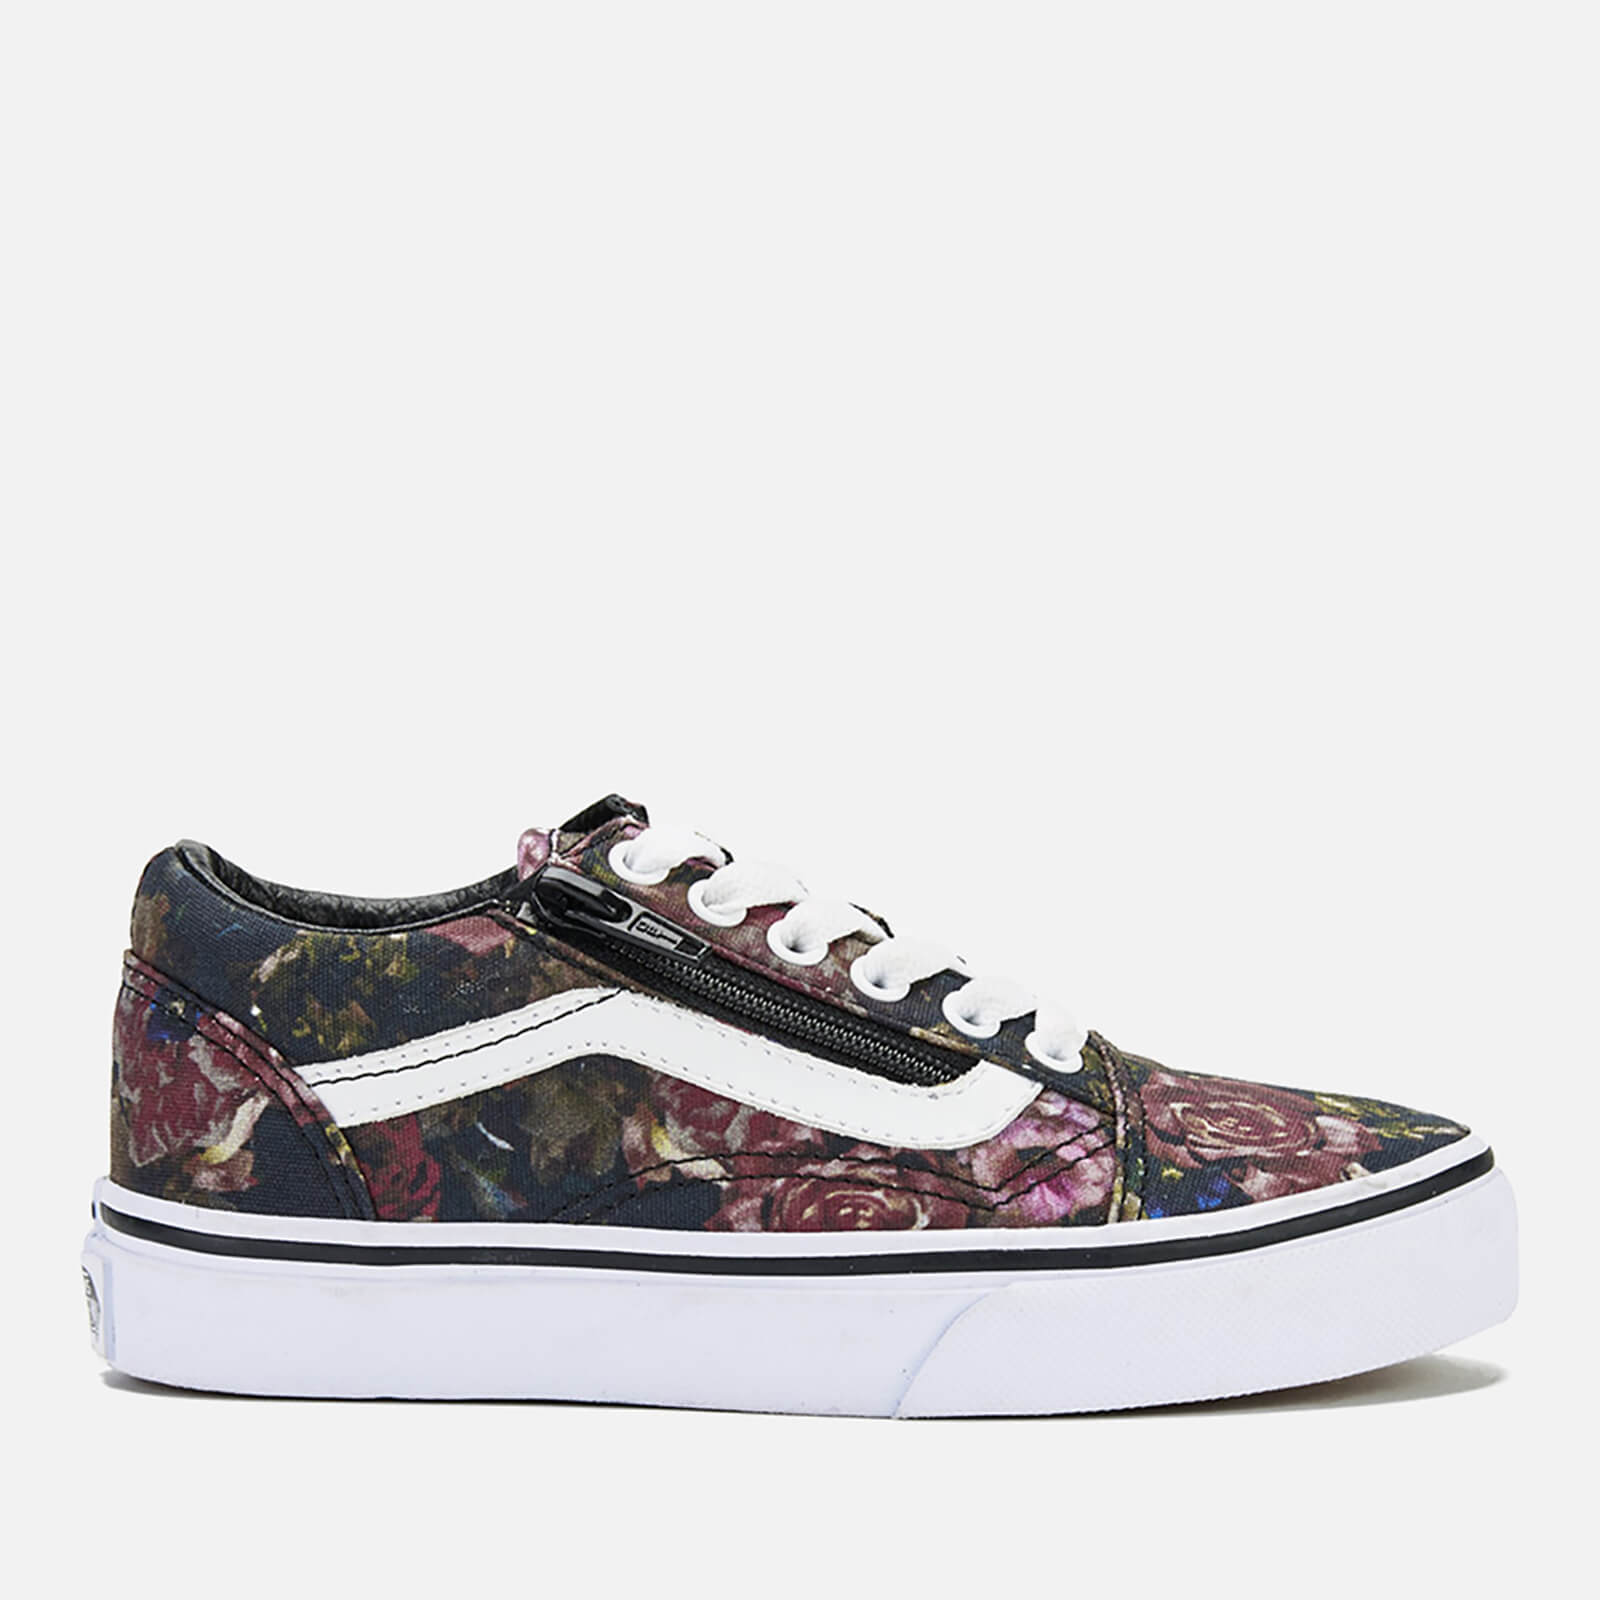 1e0b7cd540 Vans Kids  Old Skool Zip Trainers - Moody Floral Black True White ...